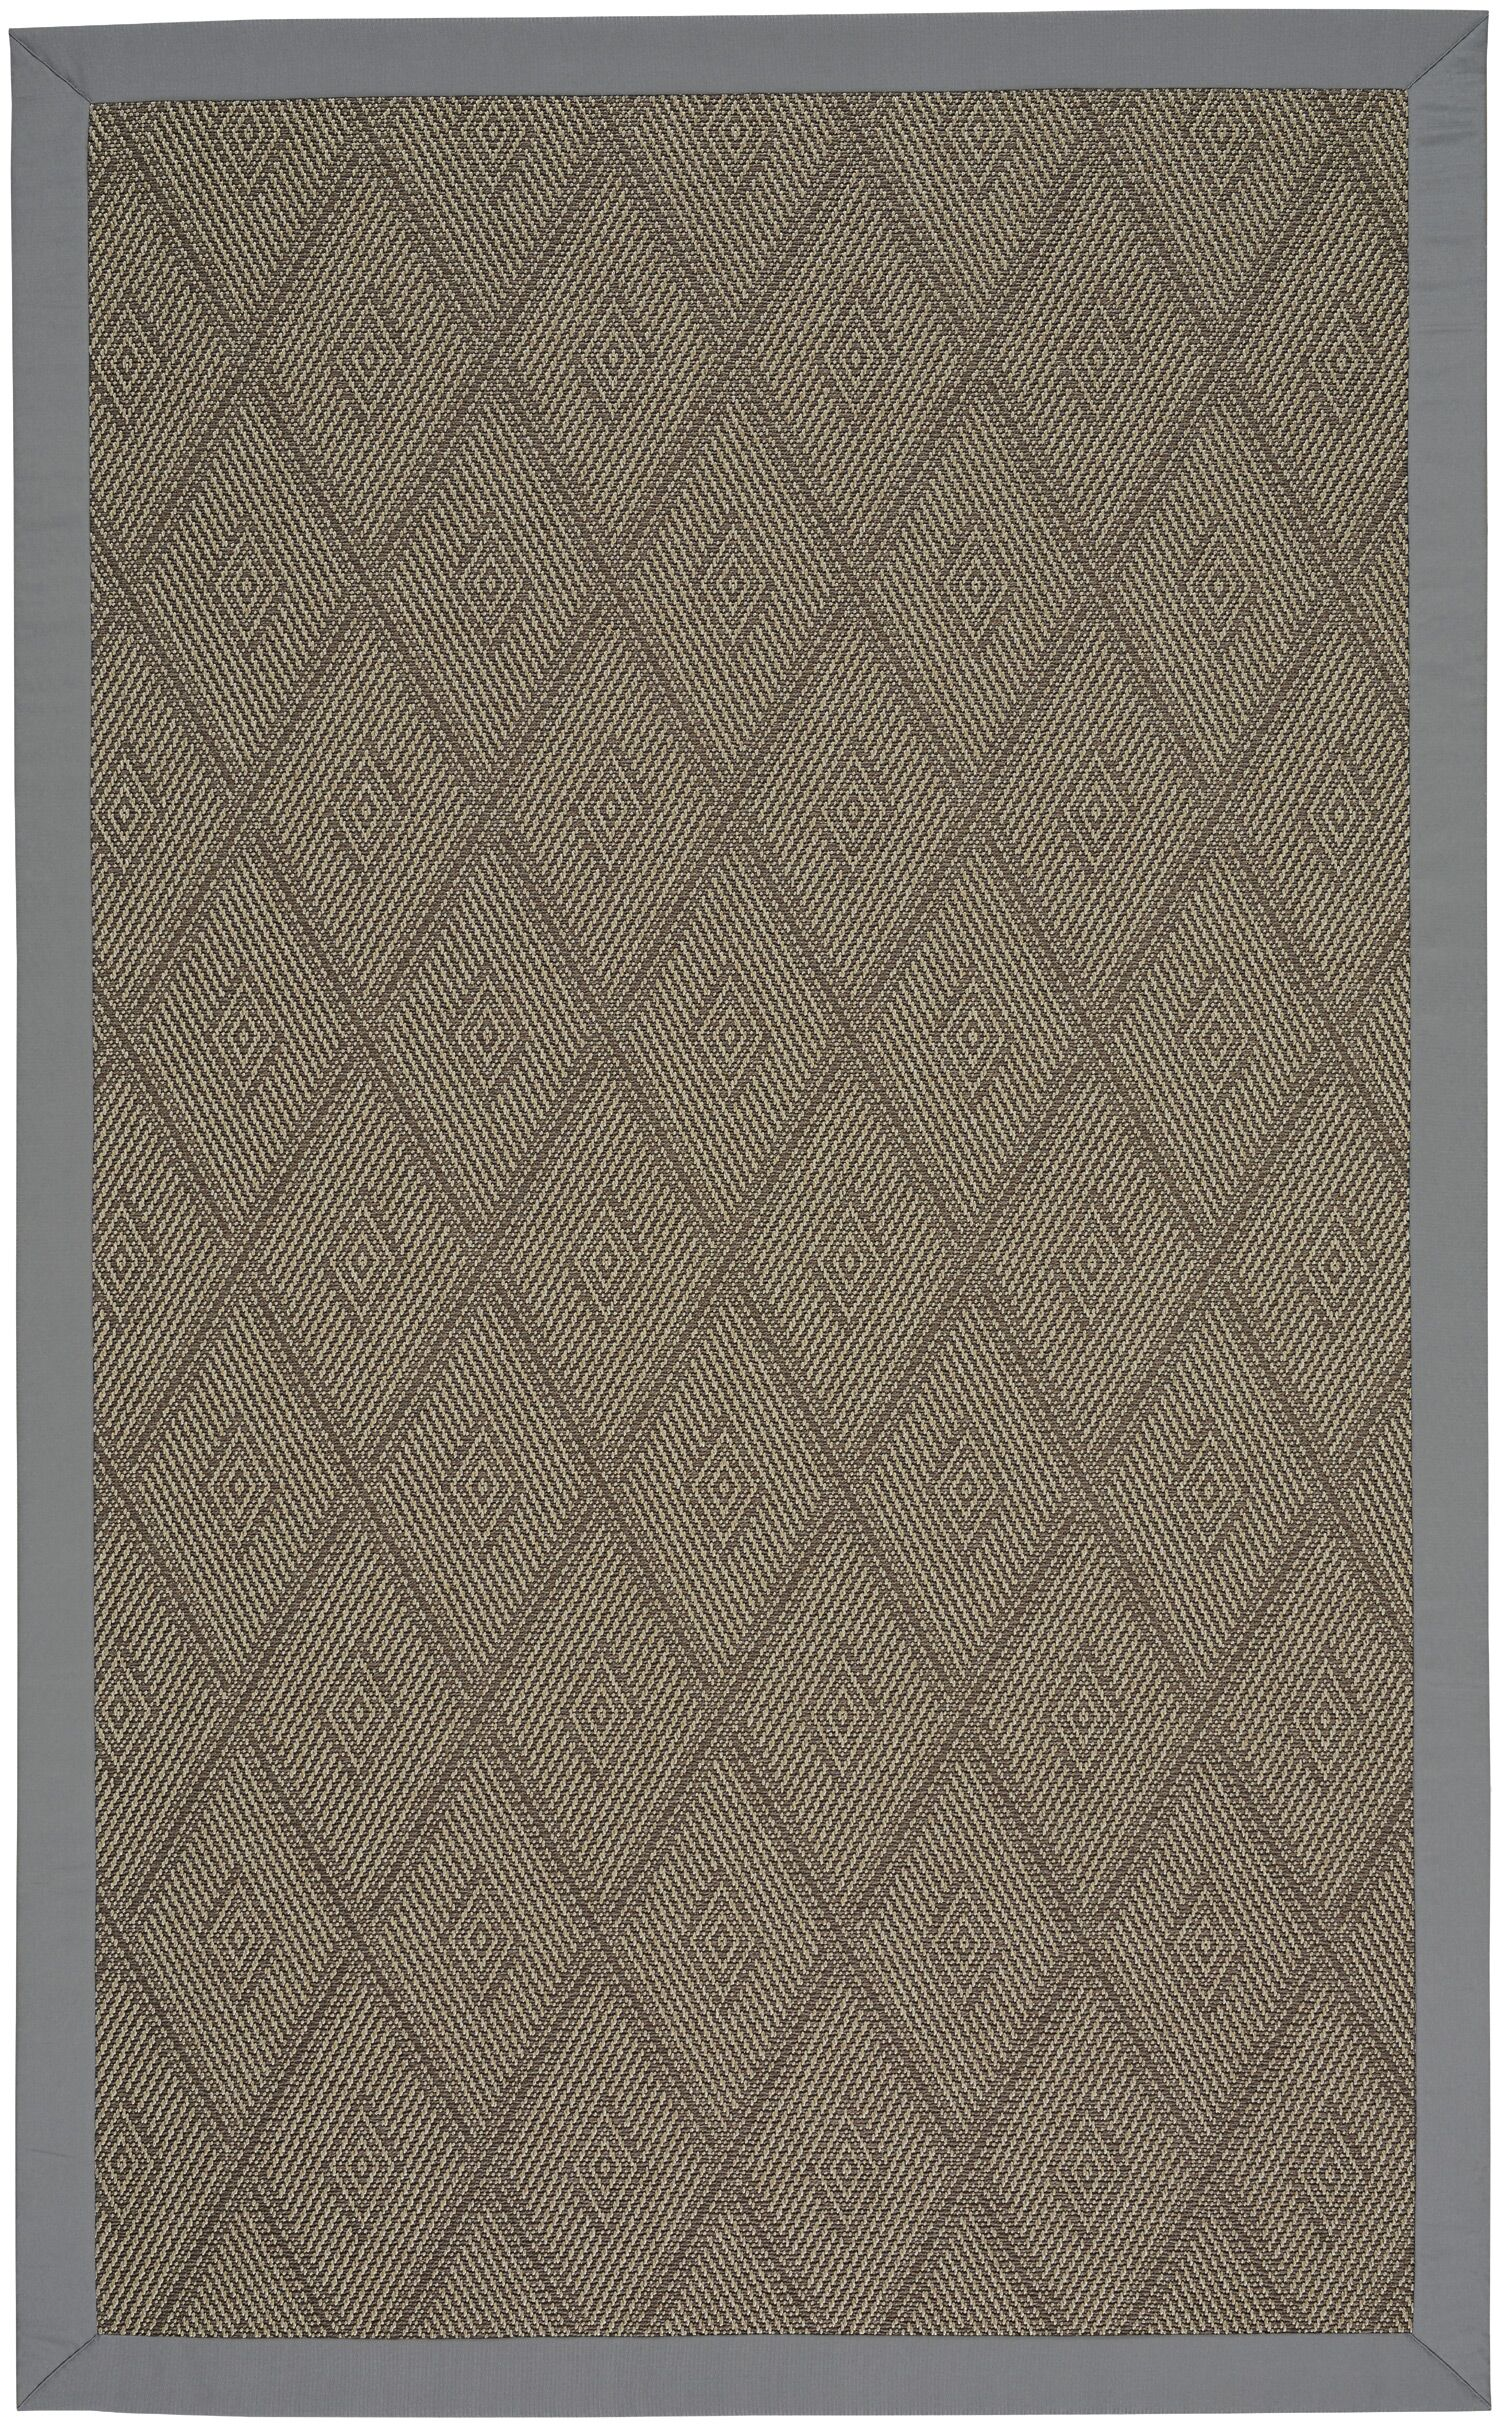 Gresham Earl Gray Braided Brown Indoor/Outdoor Area Rug Rug Size: Octagon 8'